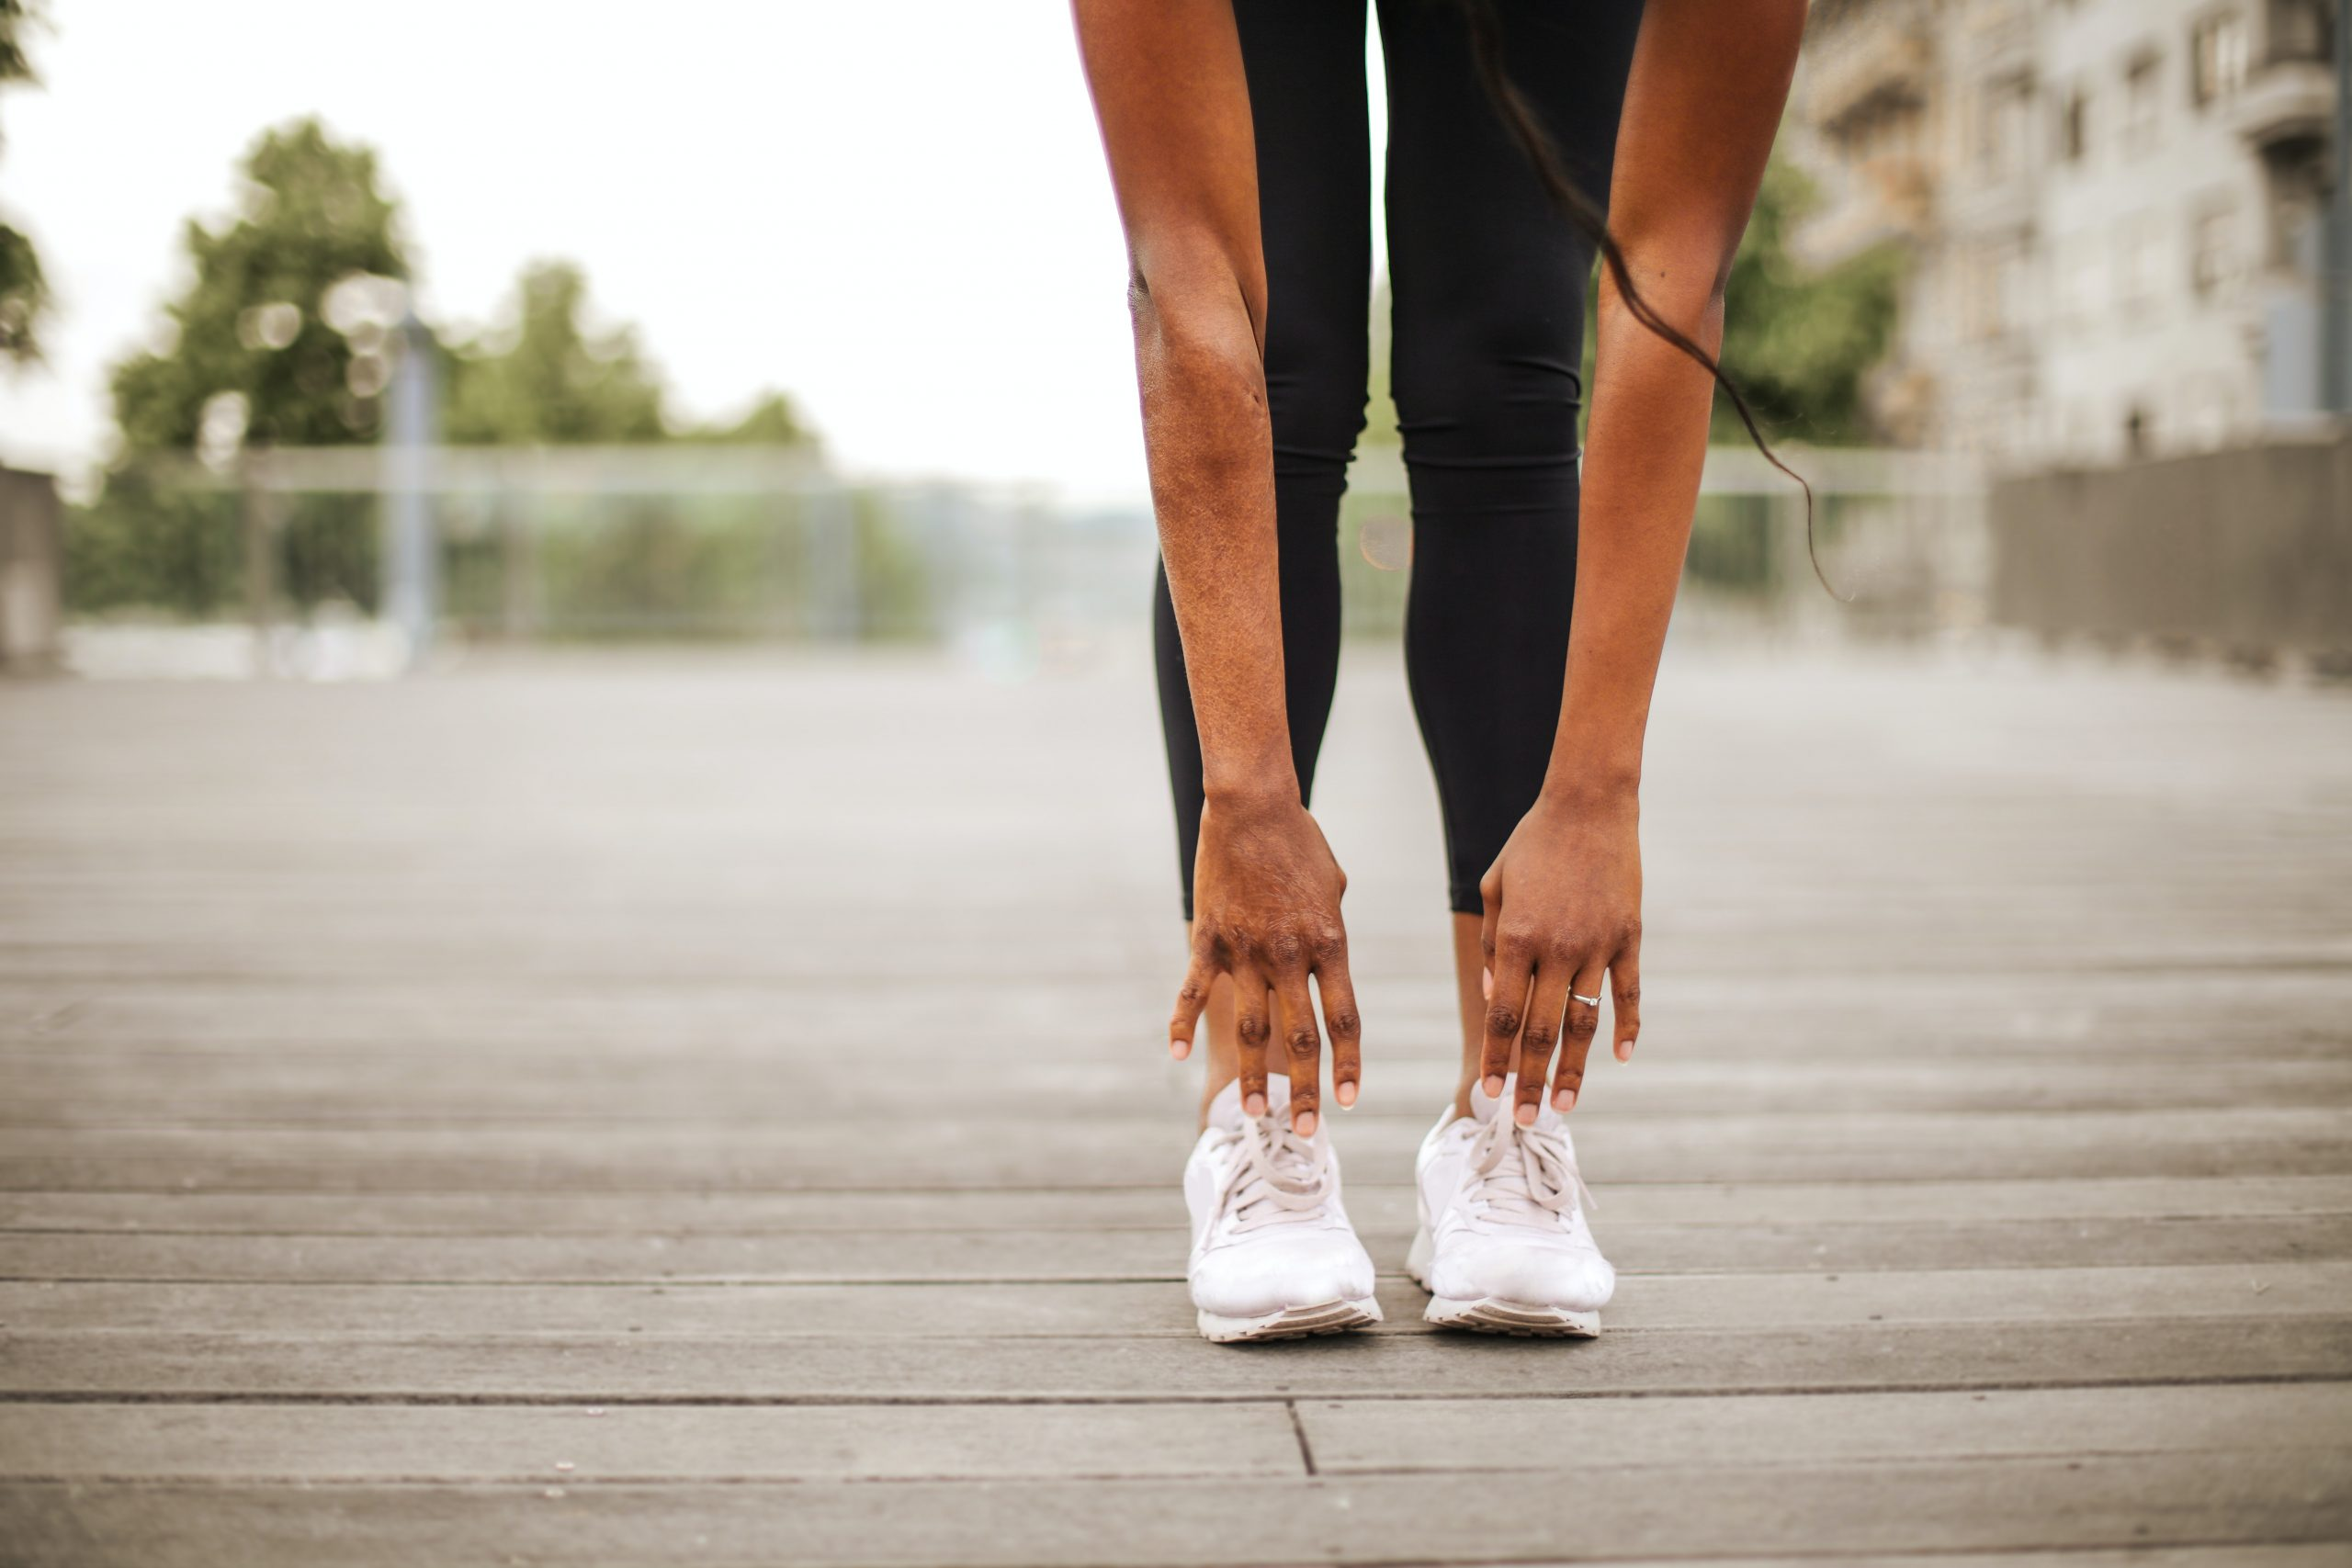 What To Keep An Eye On With Sore Legs